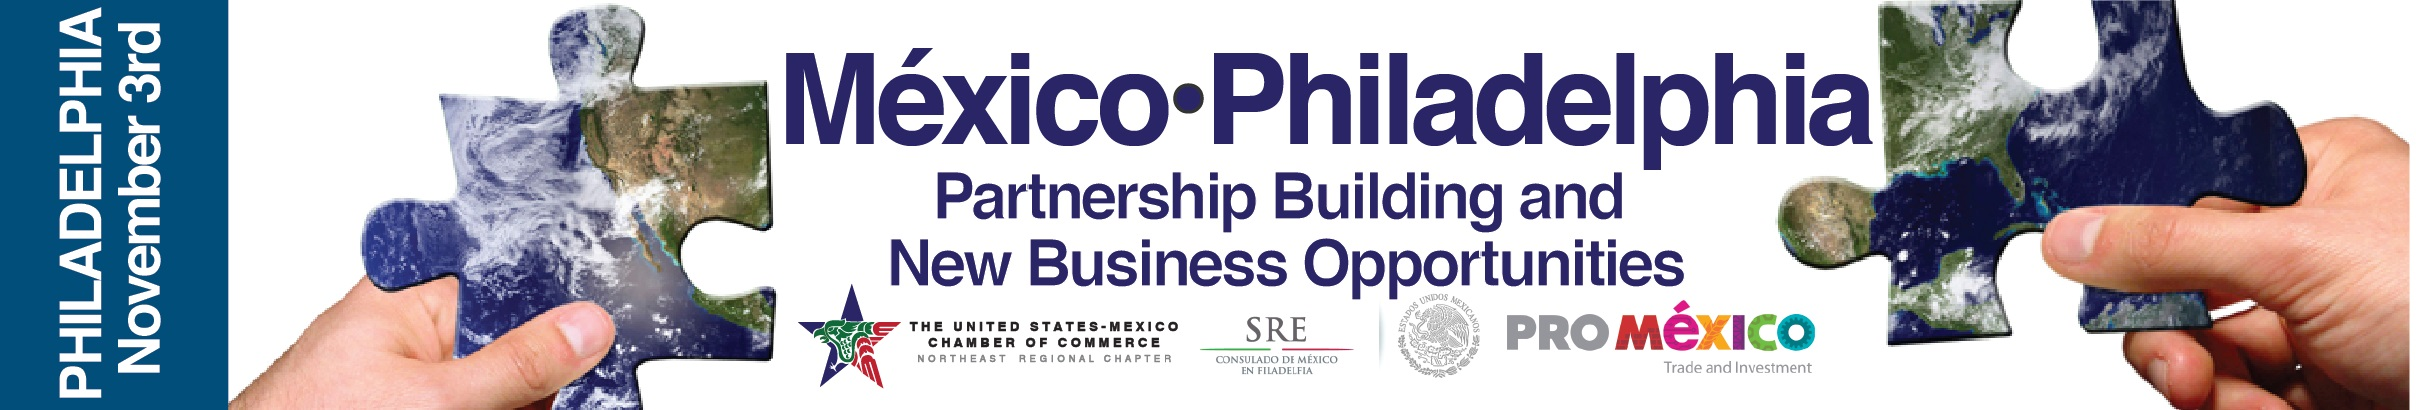 Mexico-Philadelphia: Building Partnerships and New Business Opportunities